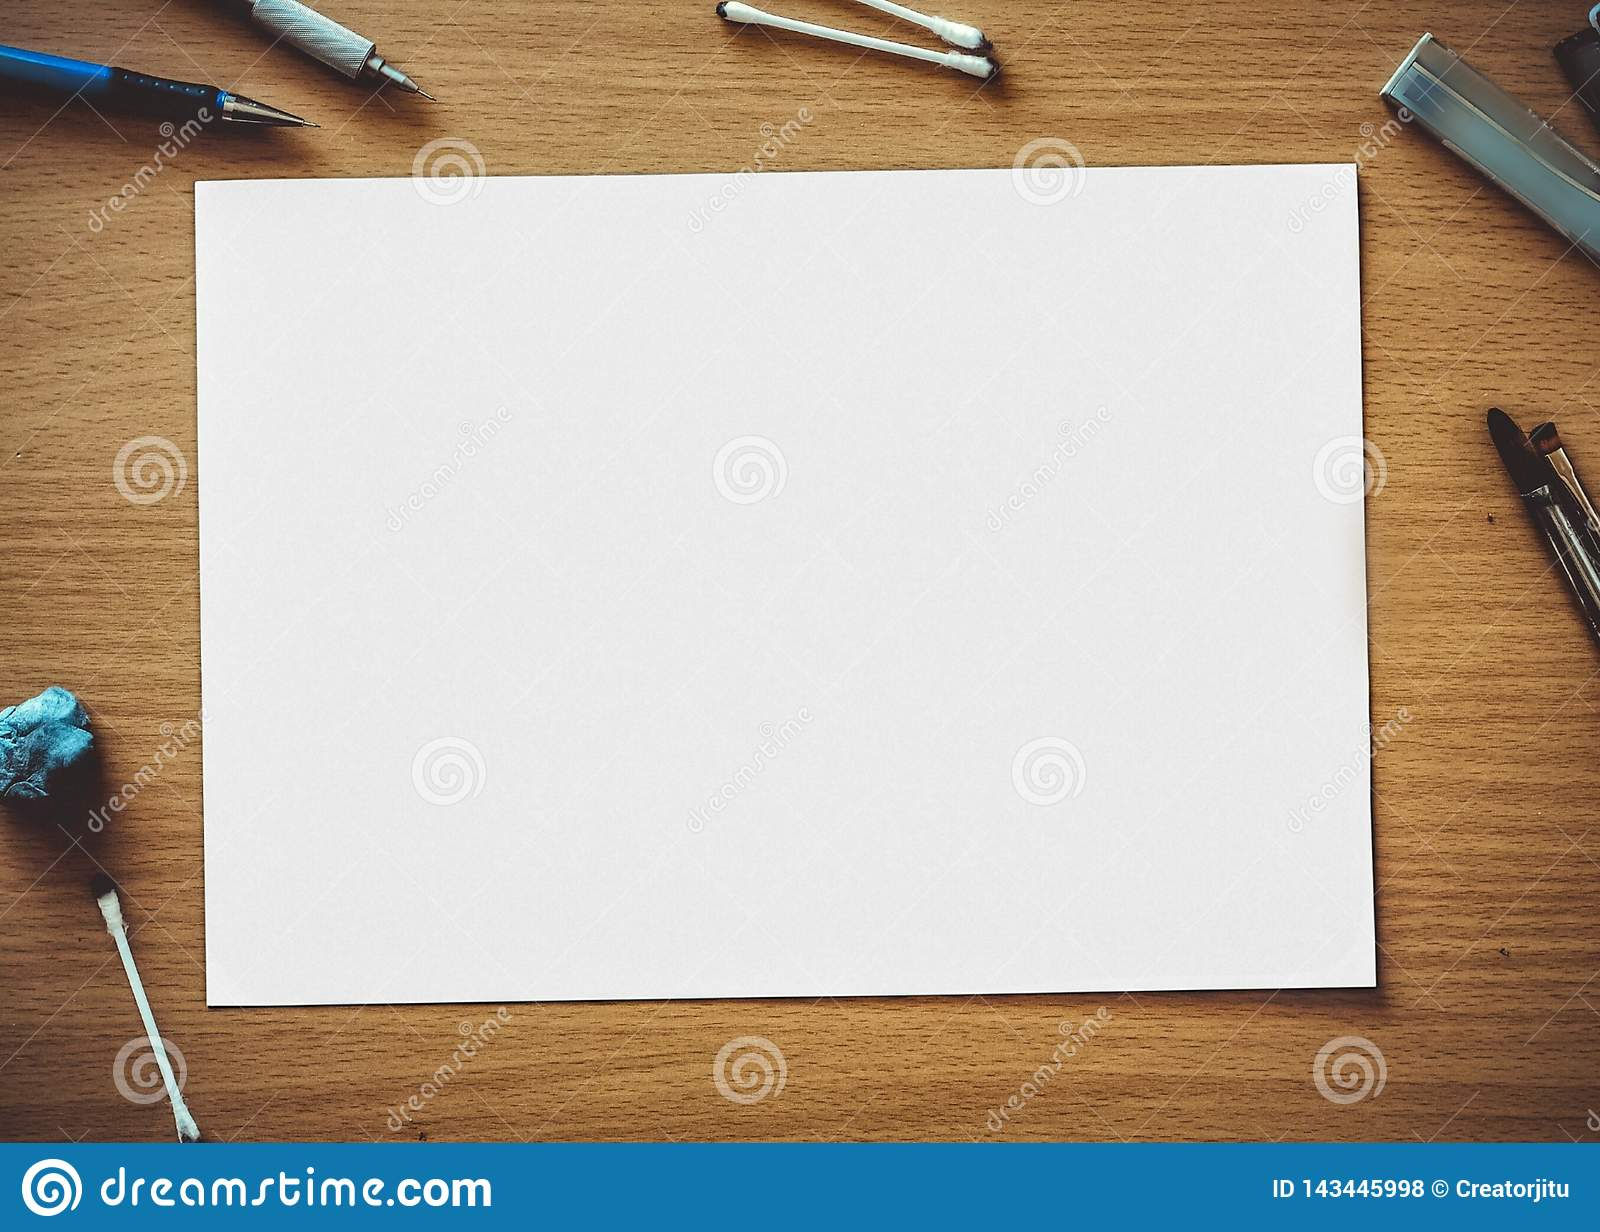 A Rectangular Chart Put On A Brown Coloured Wooden Table And A